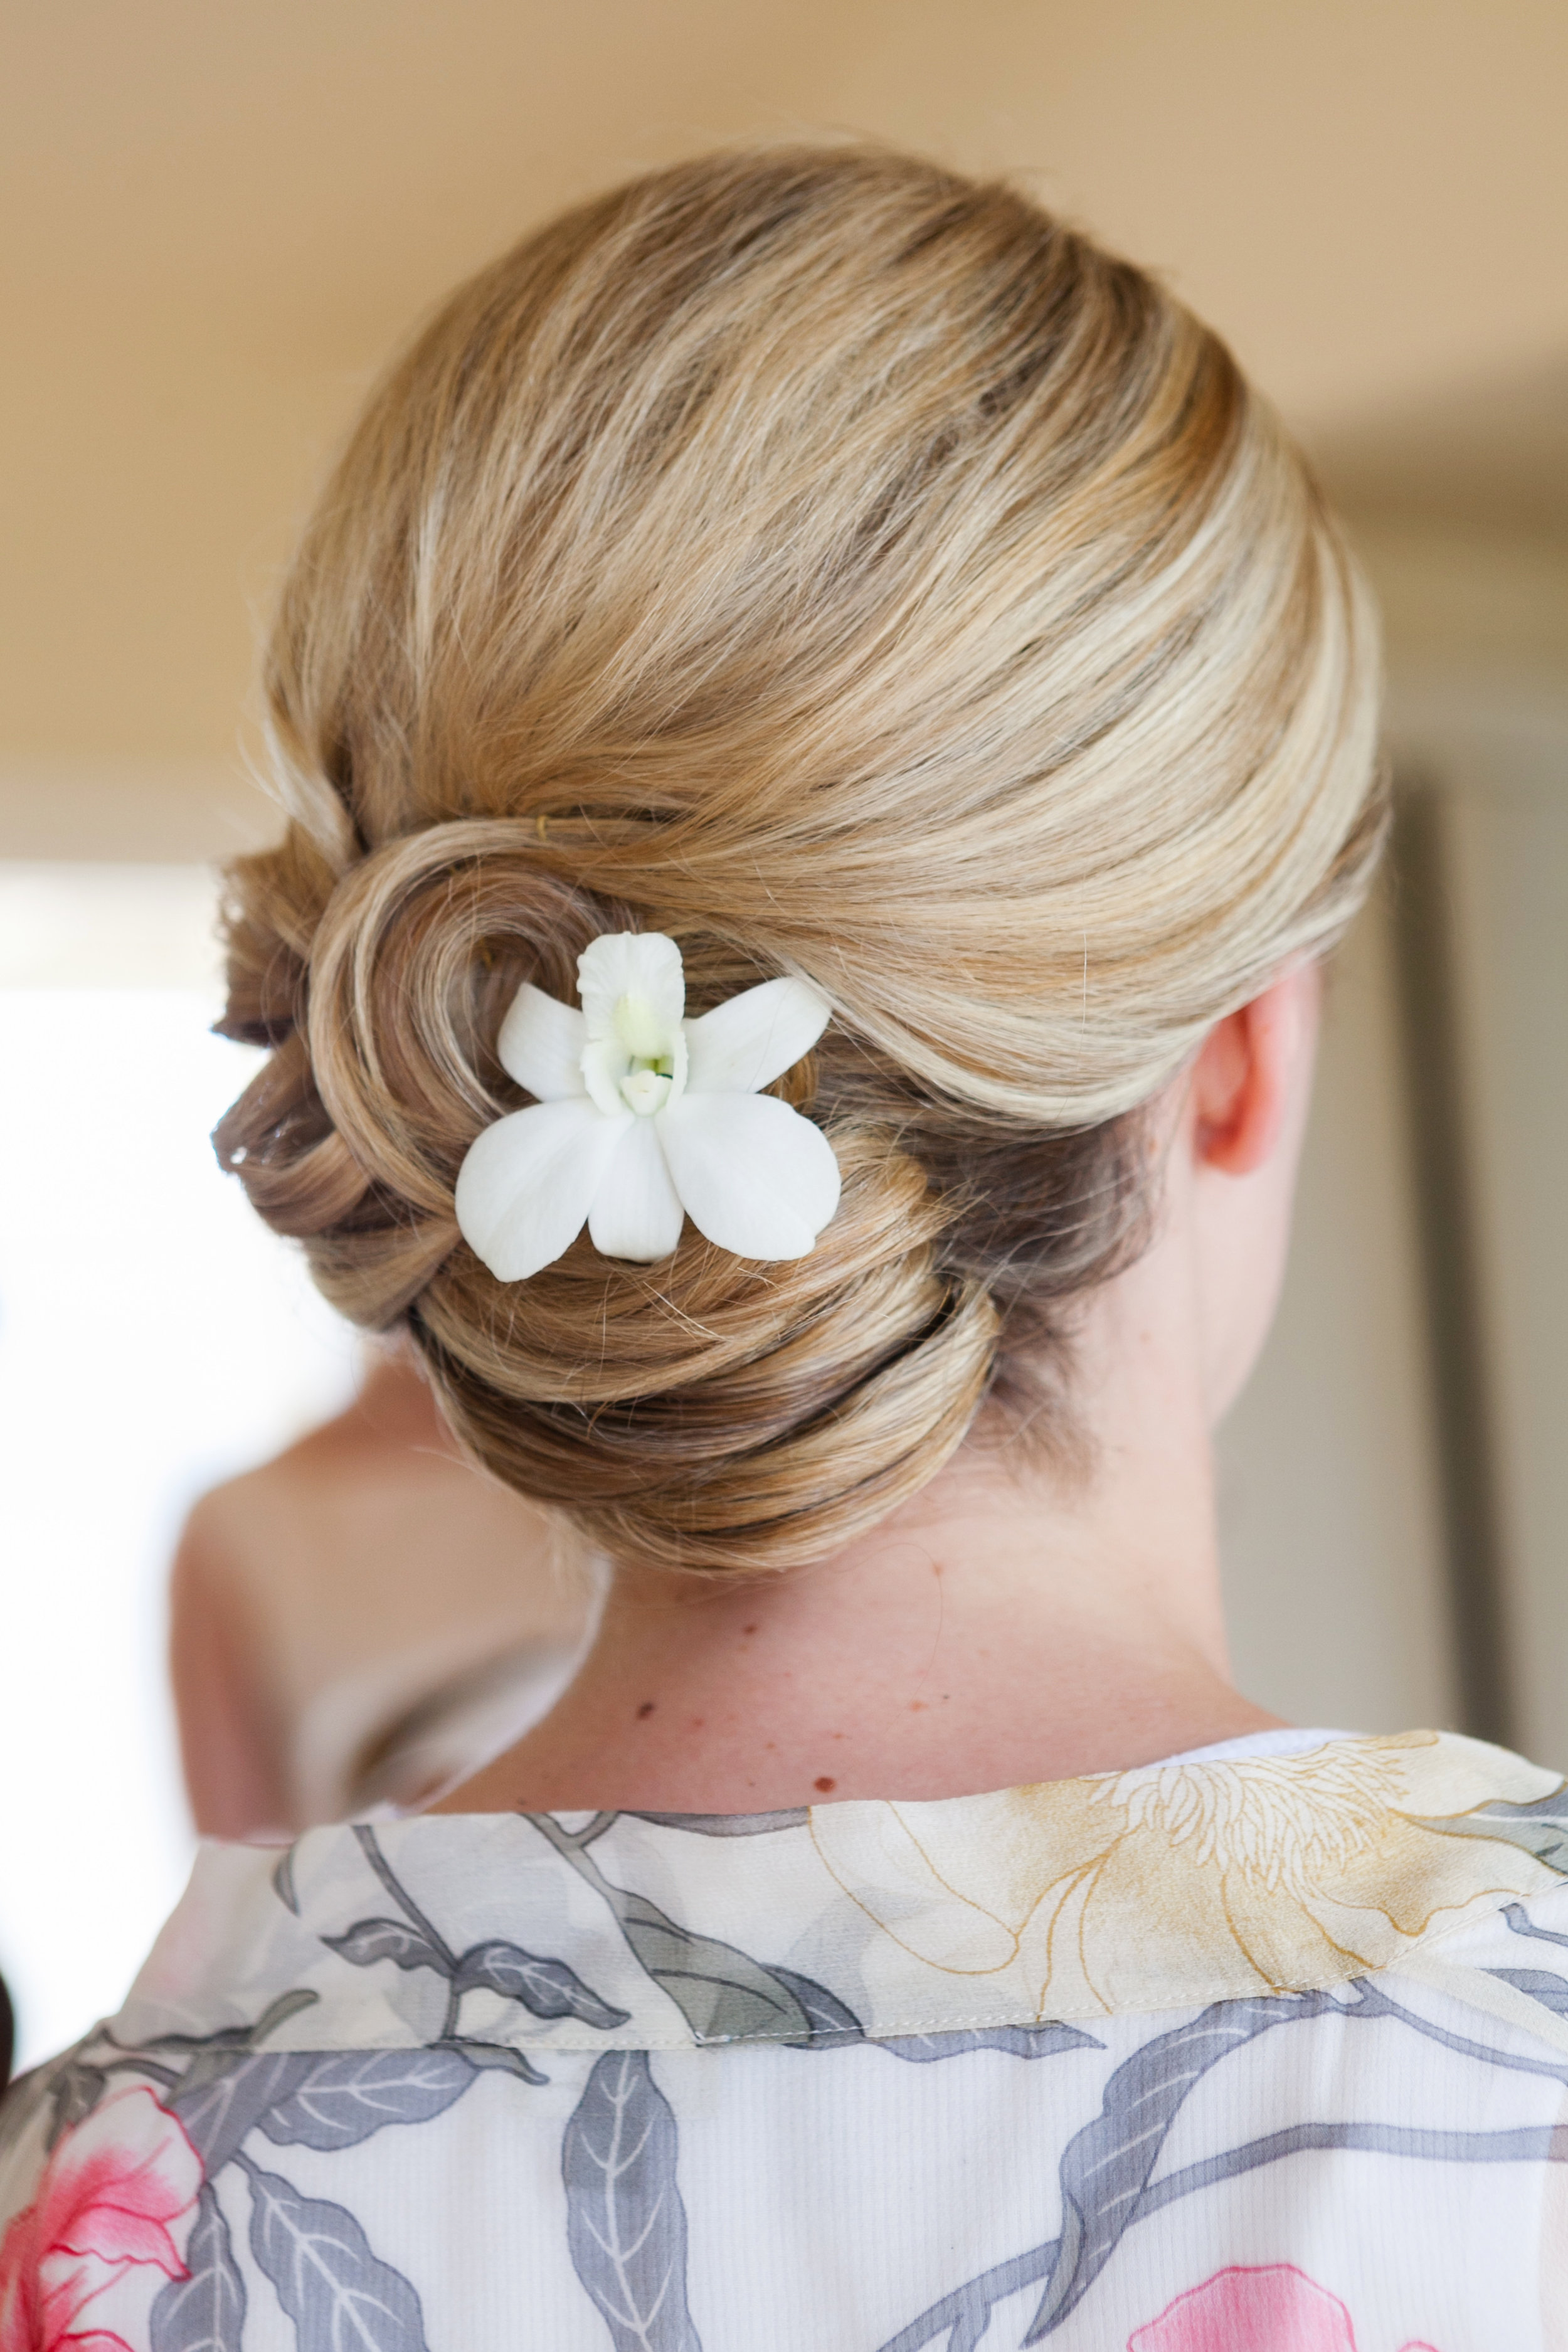 Carneros-Inn-Wedding-Updo.jpg